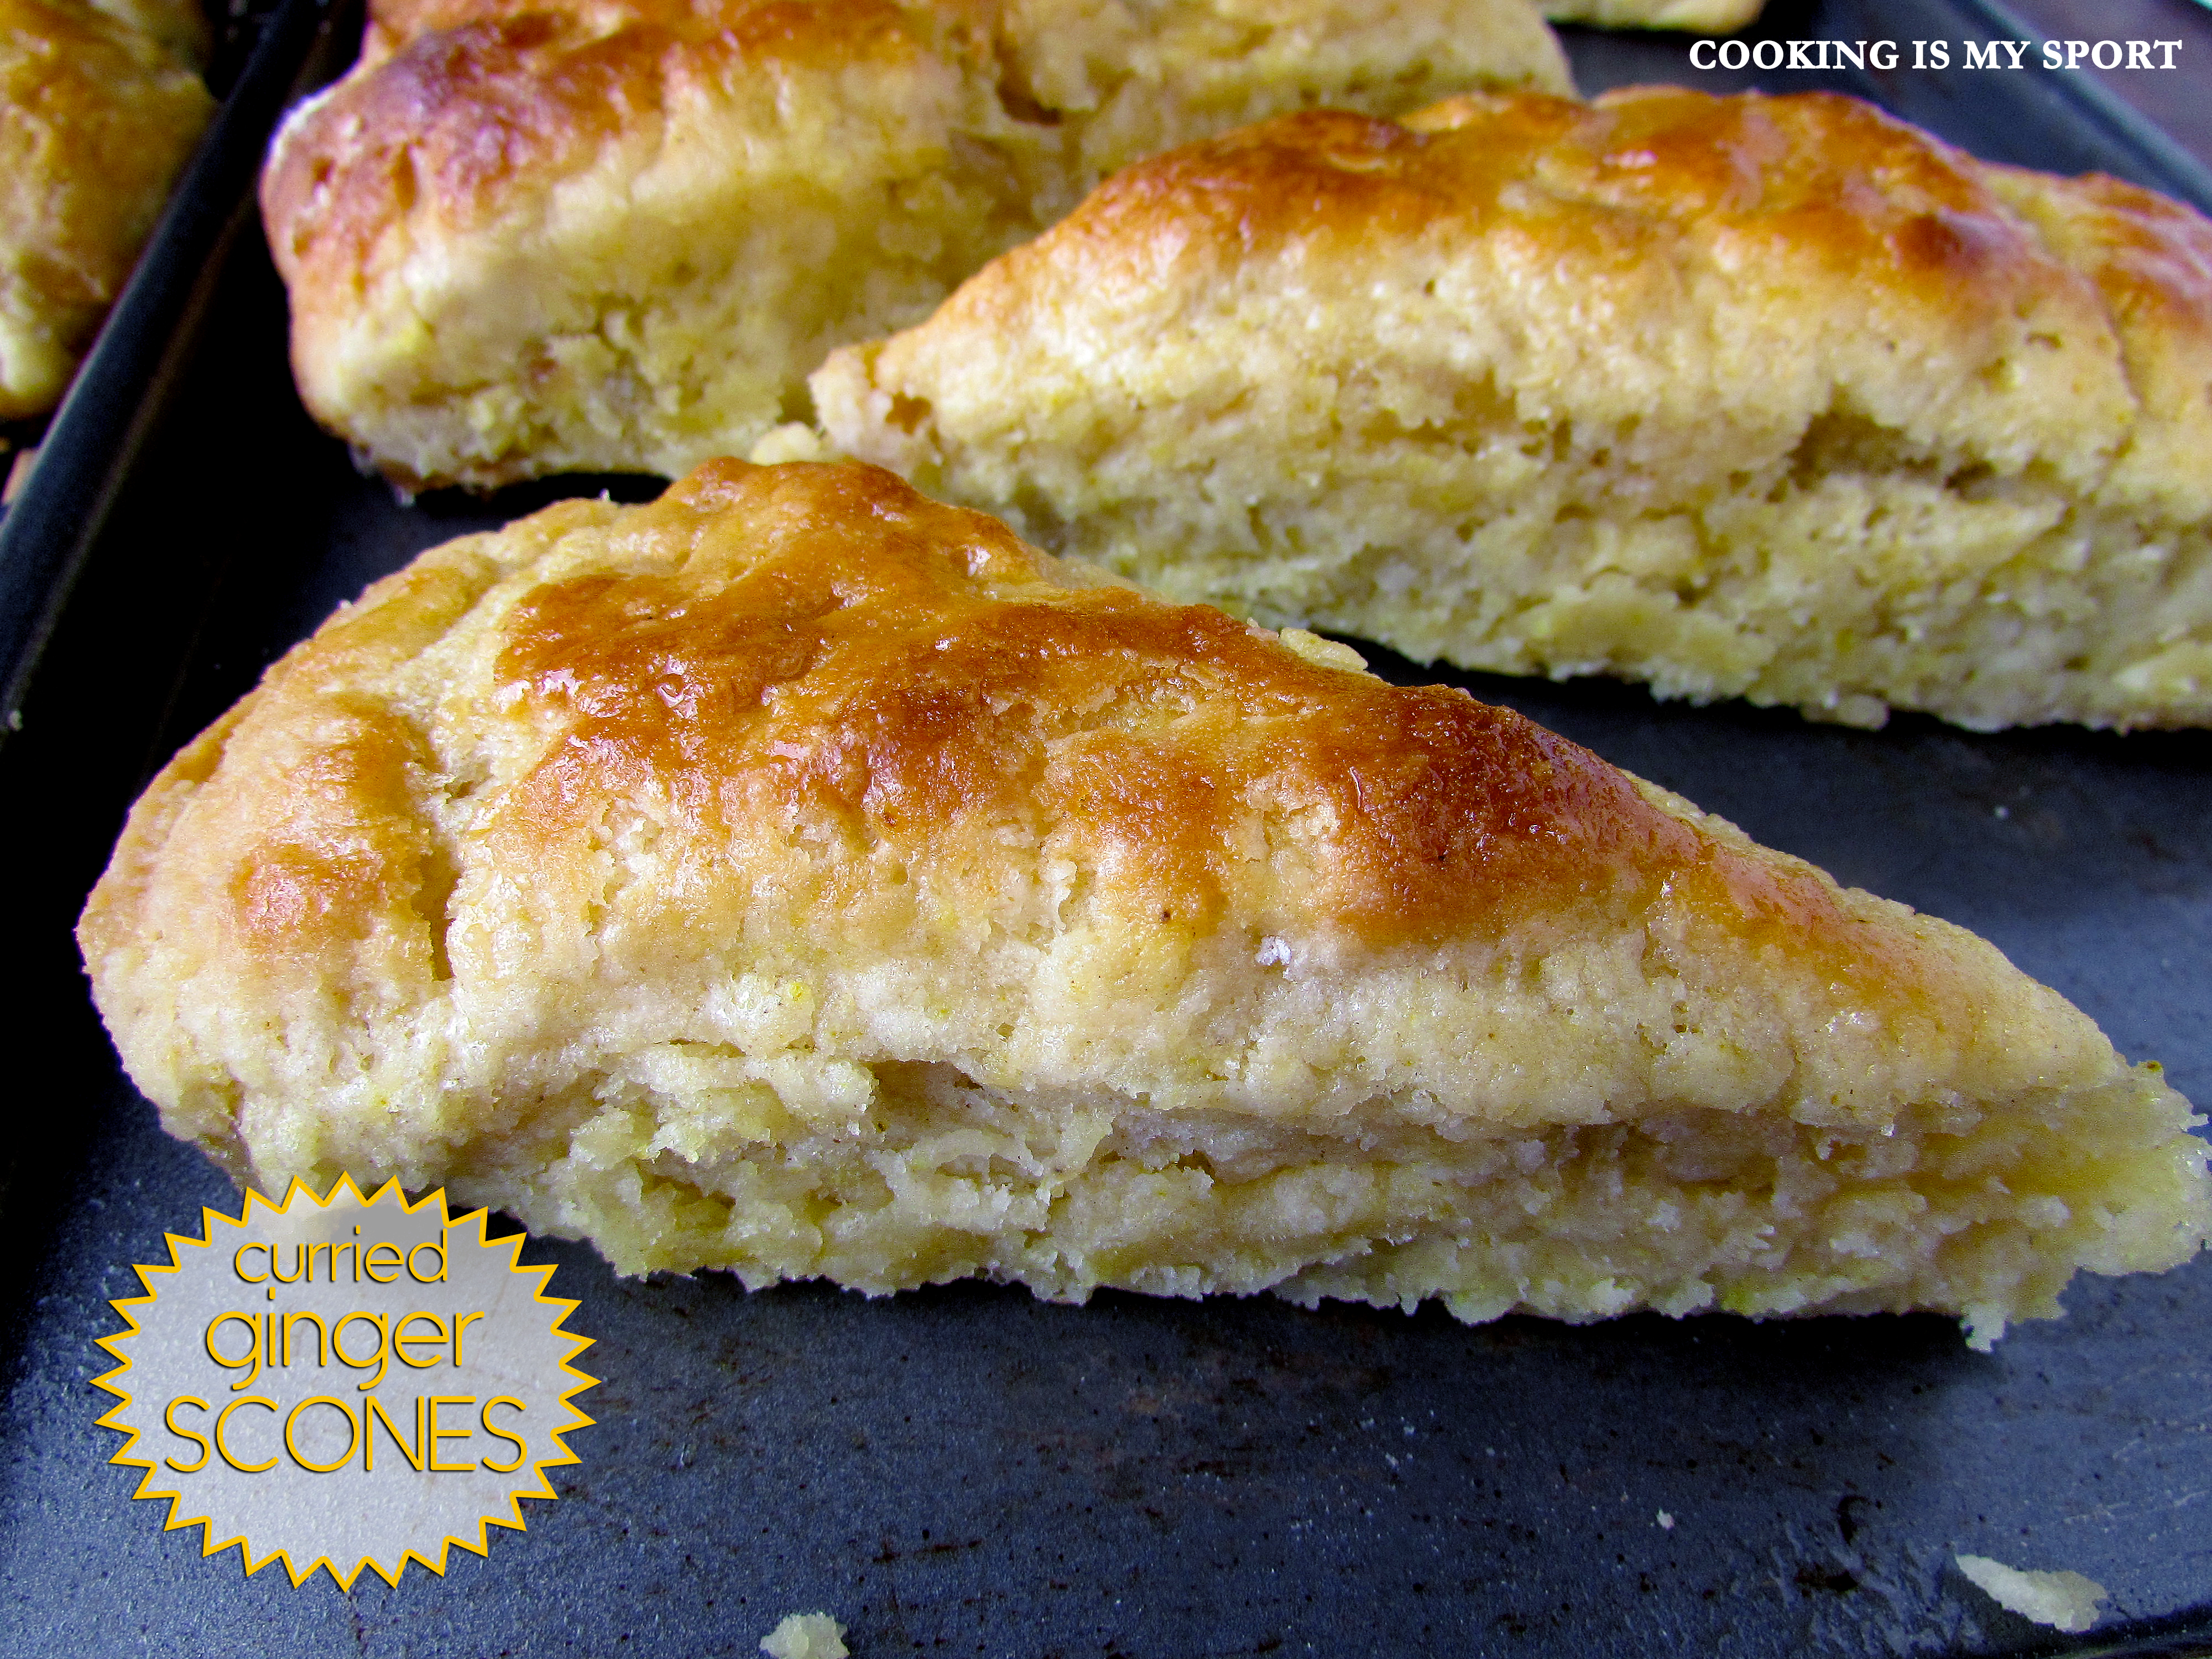 Curried Ginger Scones2